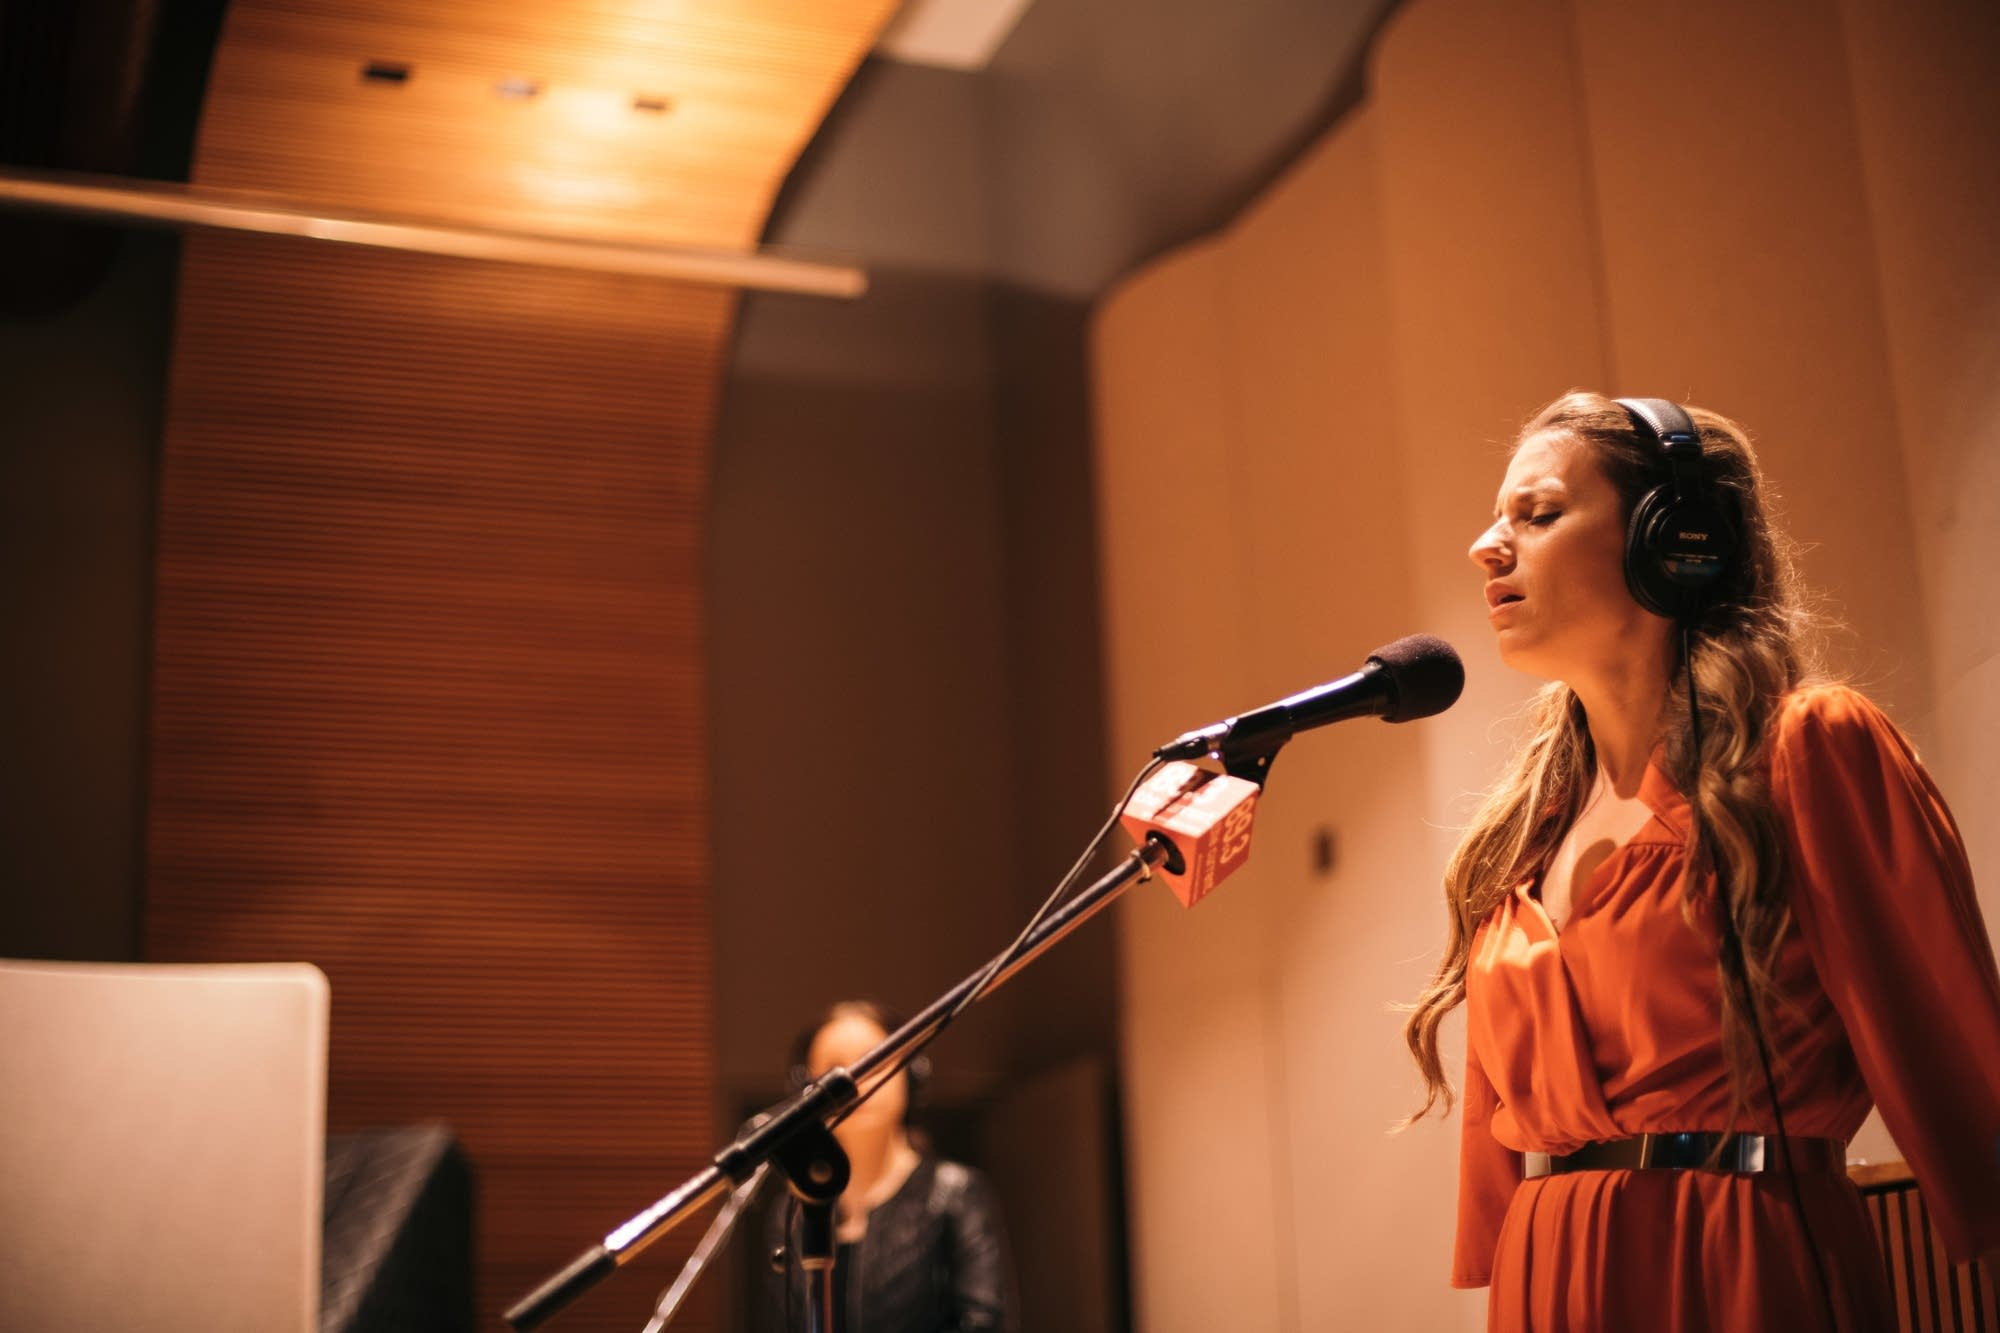 Caitlyn Smith performs in The Current studio